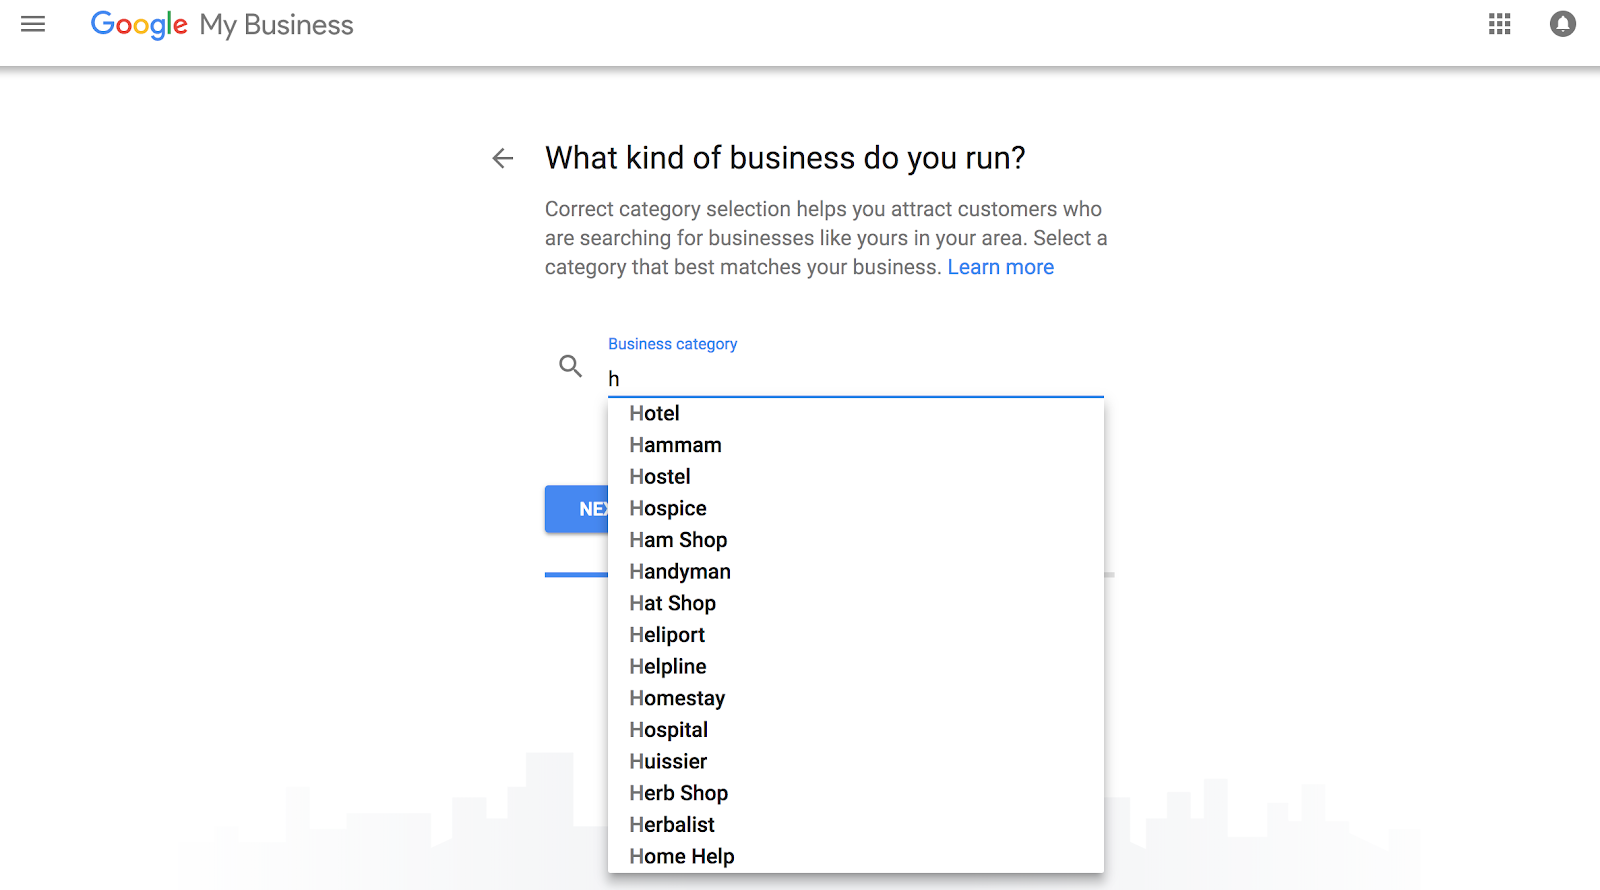 Google My Business - Business Category